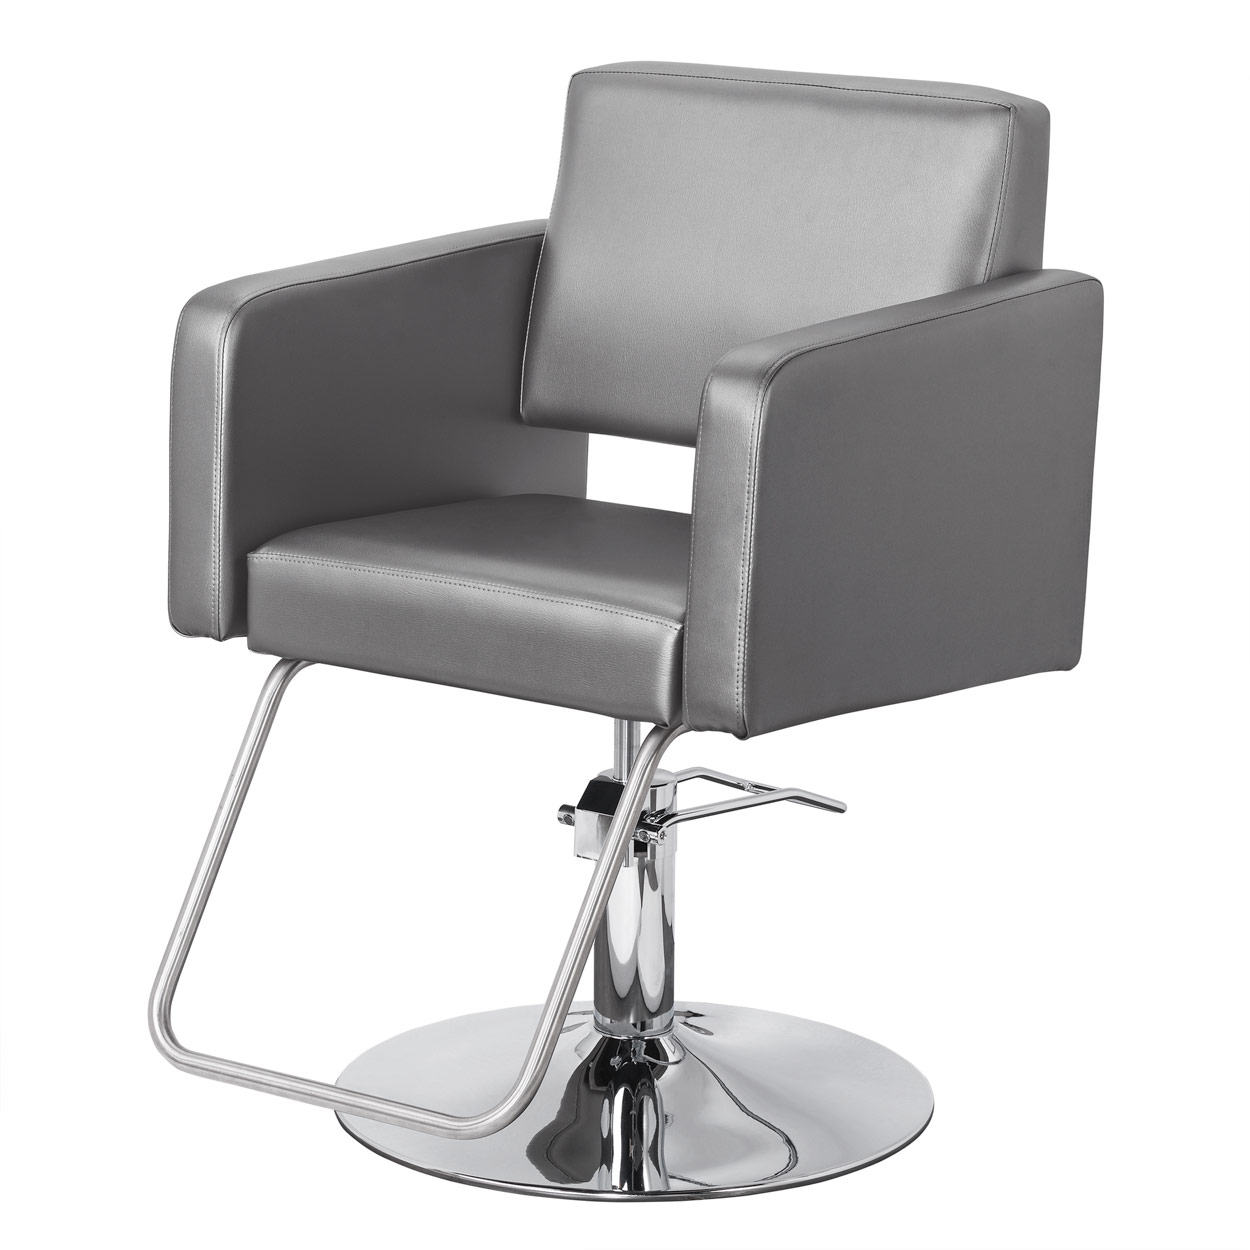 Modin Hair Salon Styling Chair alternative product image 5